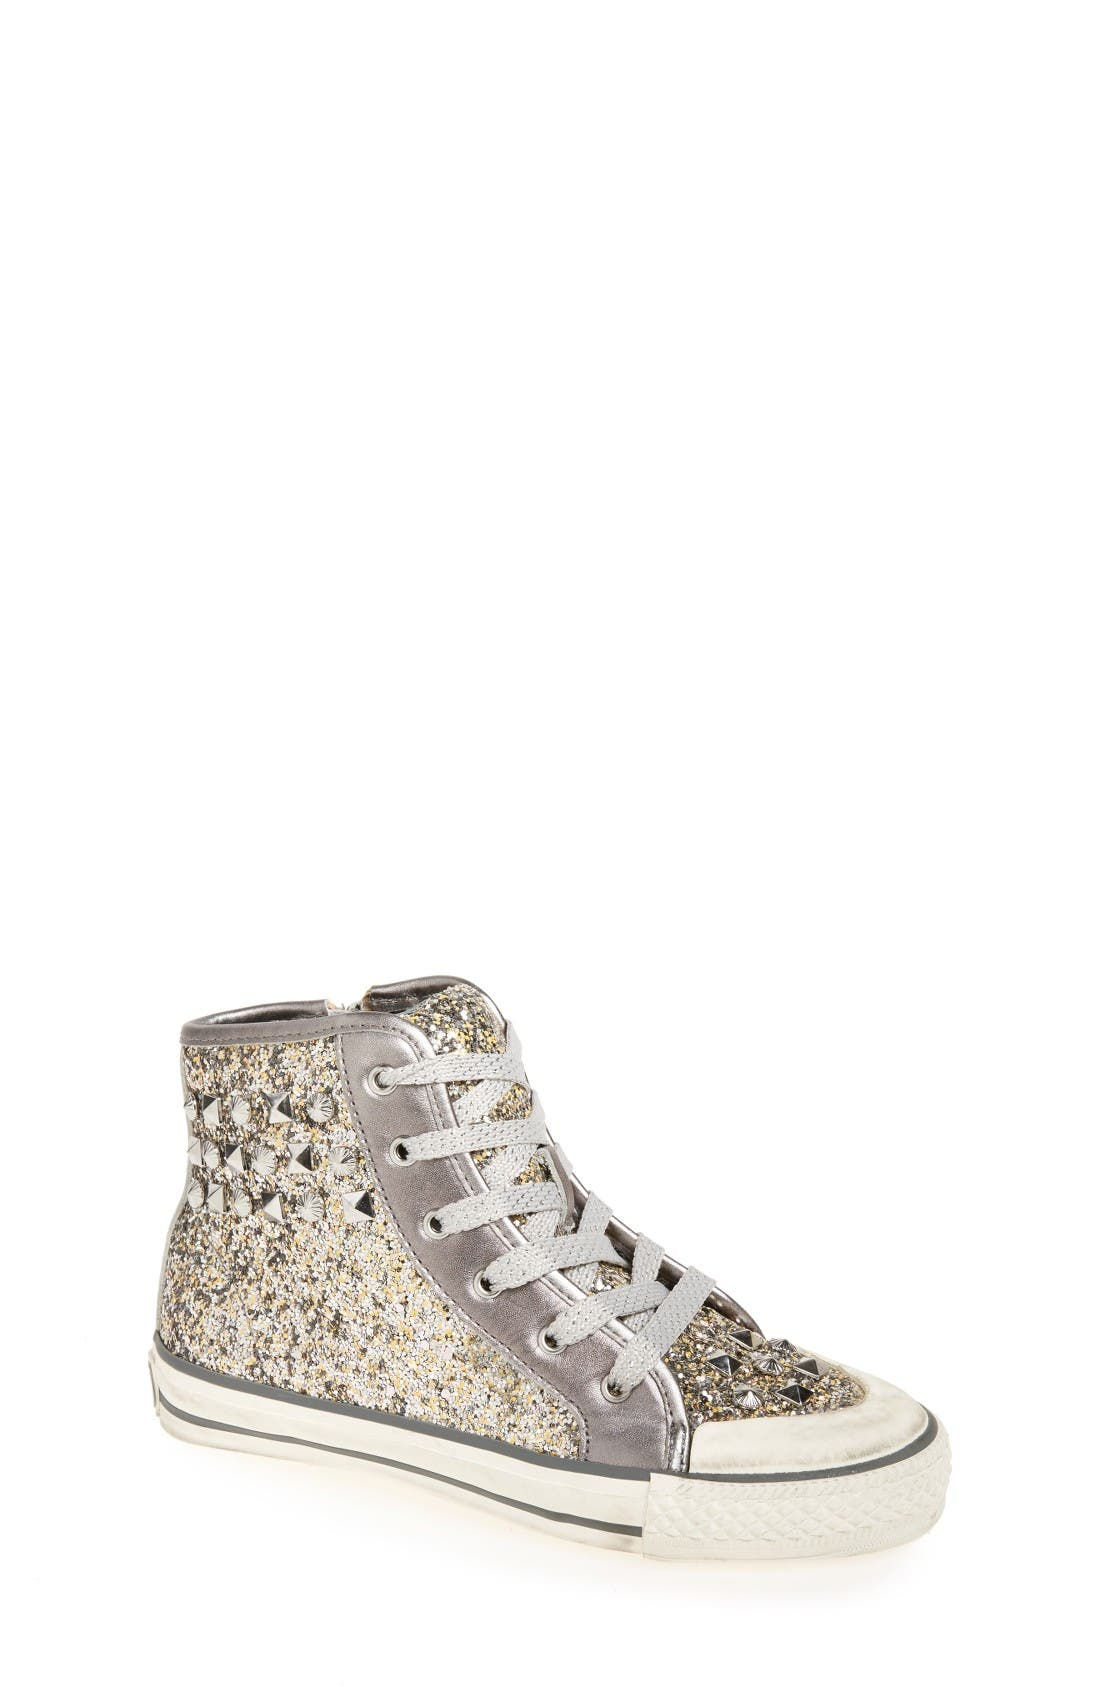 Ash 'Lita Monroe' Studded Glitter High Top Sneaker (Walker, Toddler, Little Kid & Big Kid)